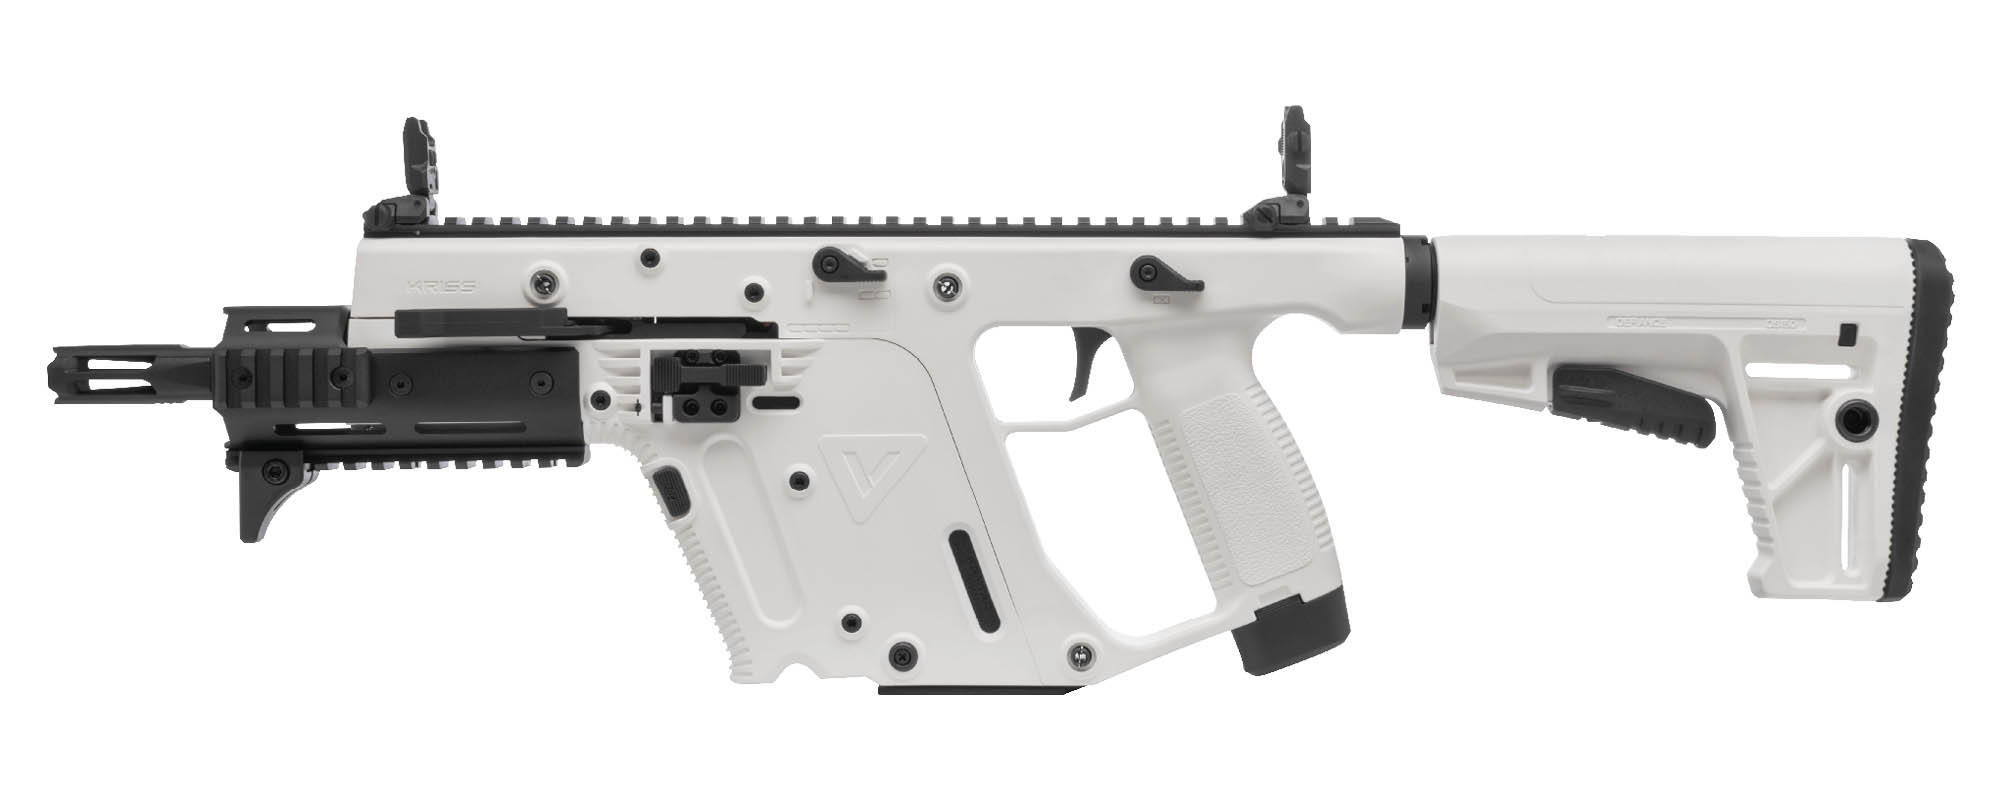 Krytac Kriss Vector Limited Edition ALPINE product image